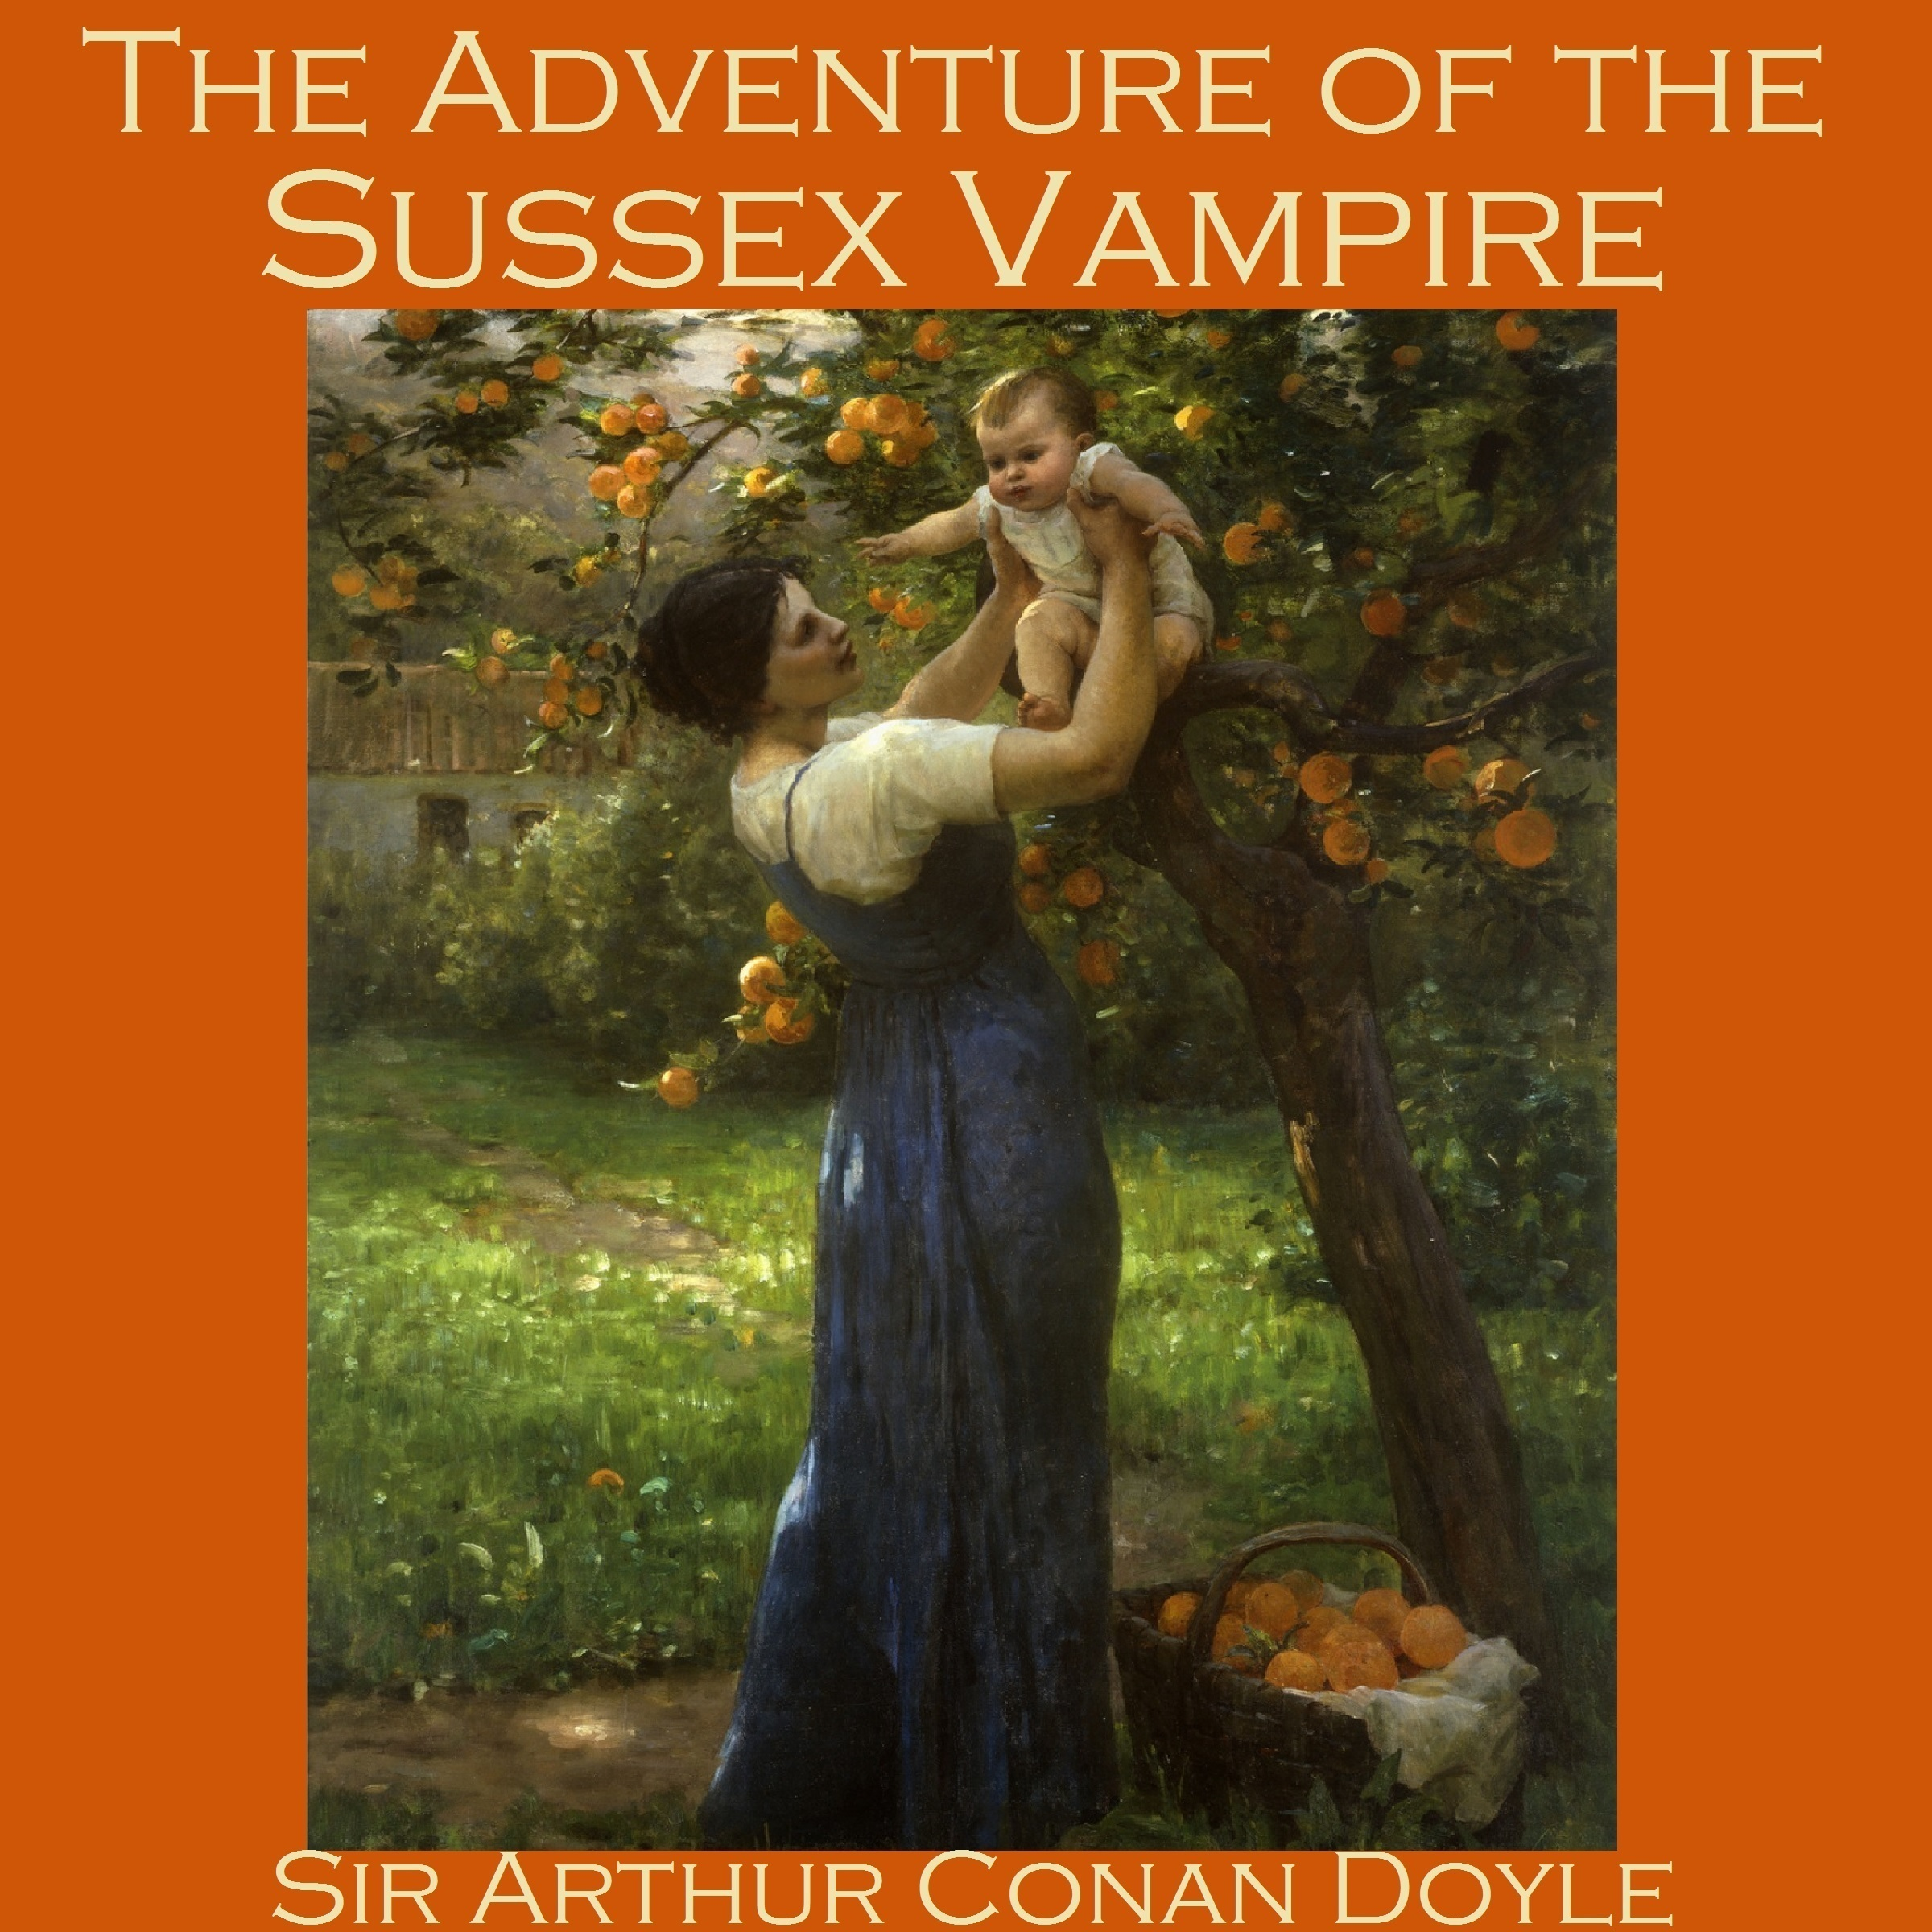 Printable The Adventure of the Sussex Vampire Audiobook Cover Art